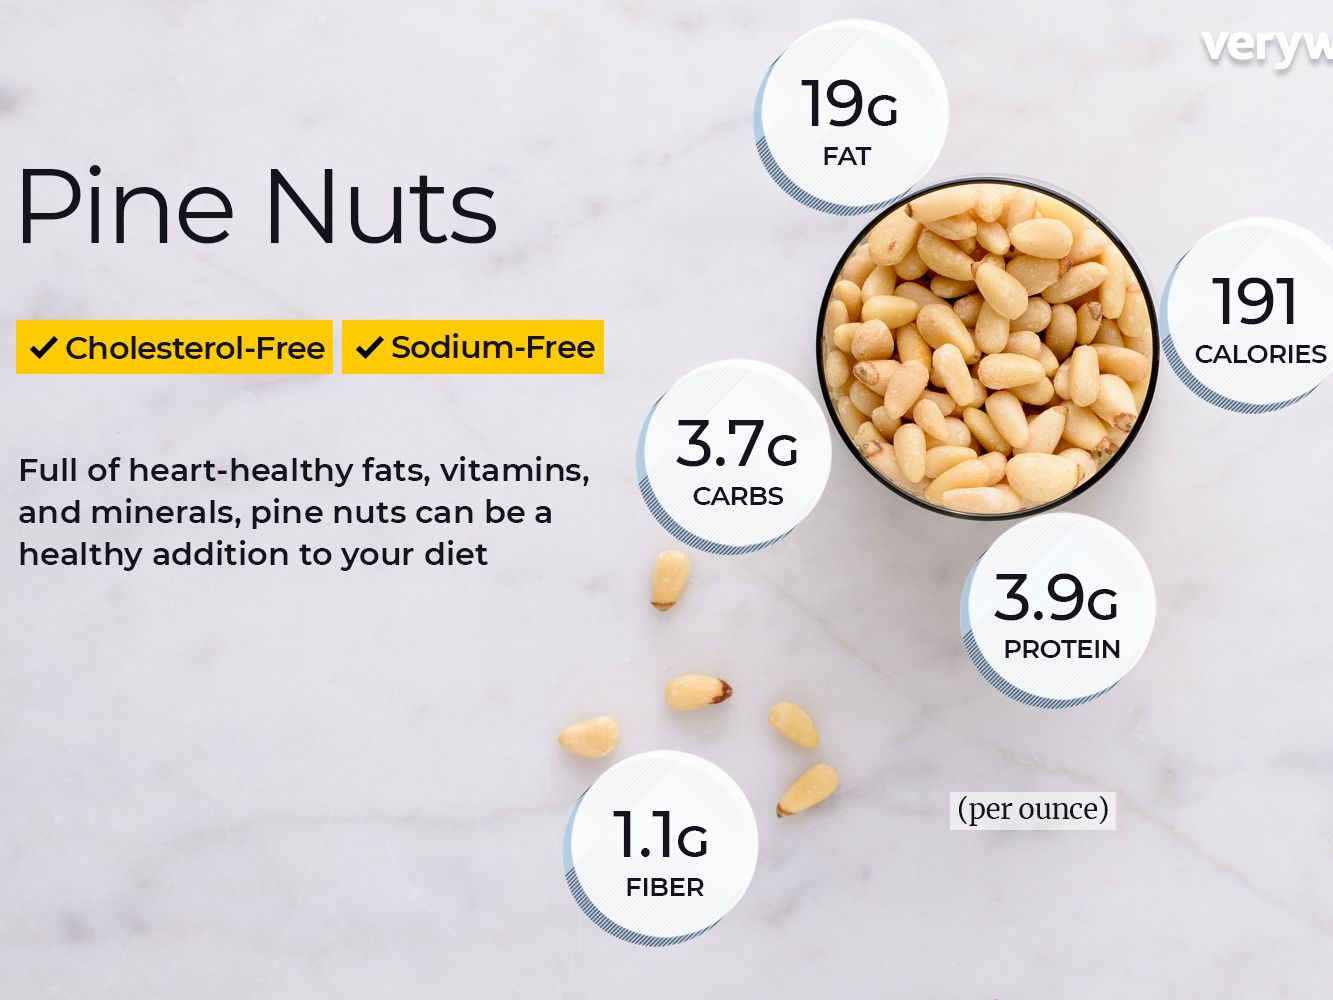 pine  nuts one  of the best nuts for minerals and healthy heart fat infographic